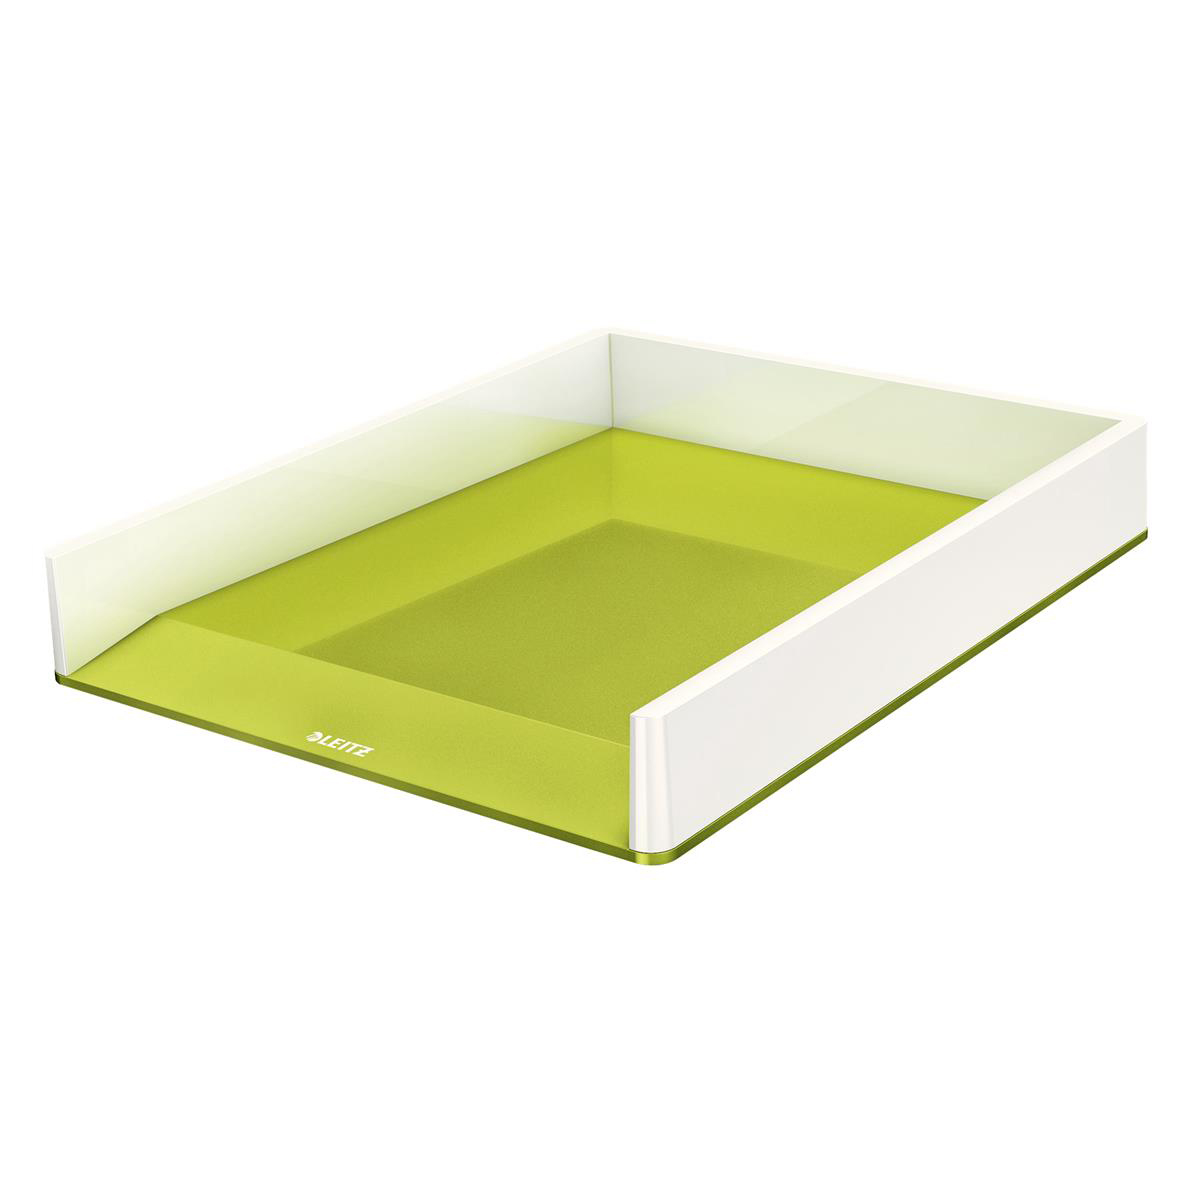 Leitz WOW Letter Tray Duo Large Opening Vertical Stacking A4/C4/Folio/Letter White/Green Ref 53611064